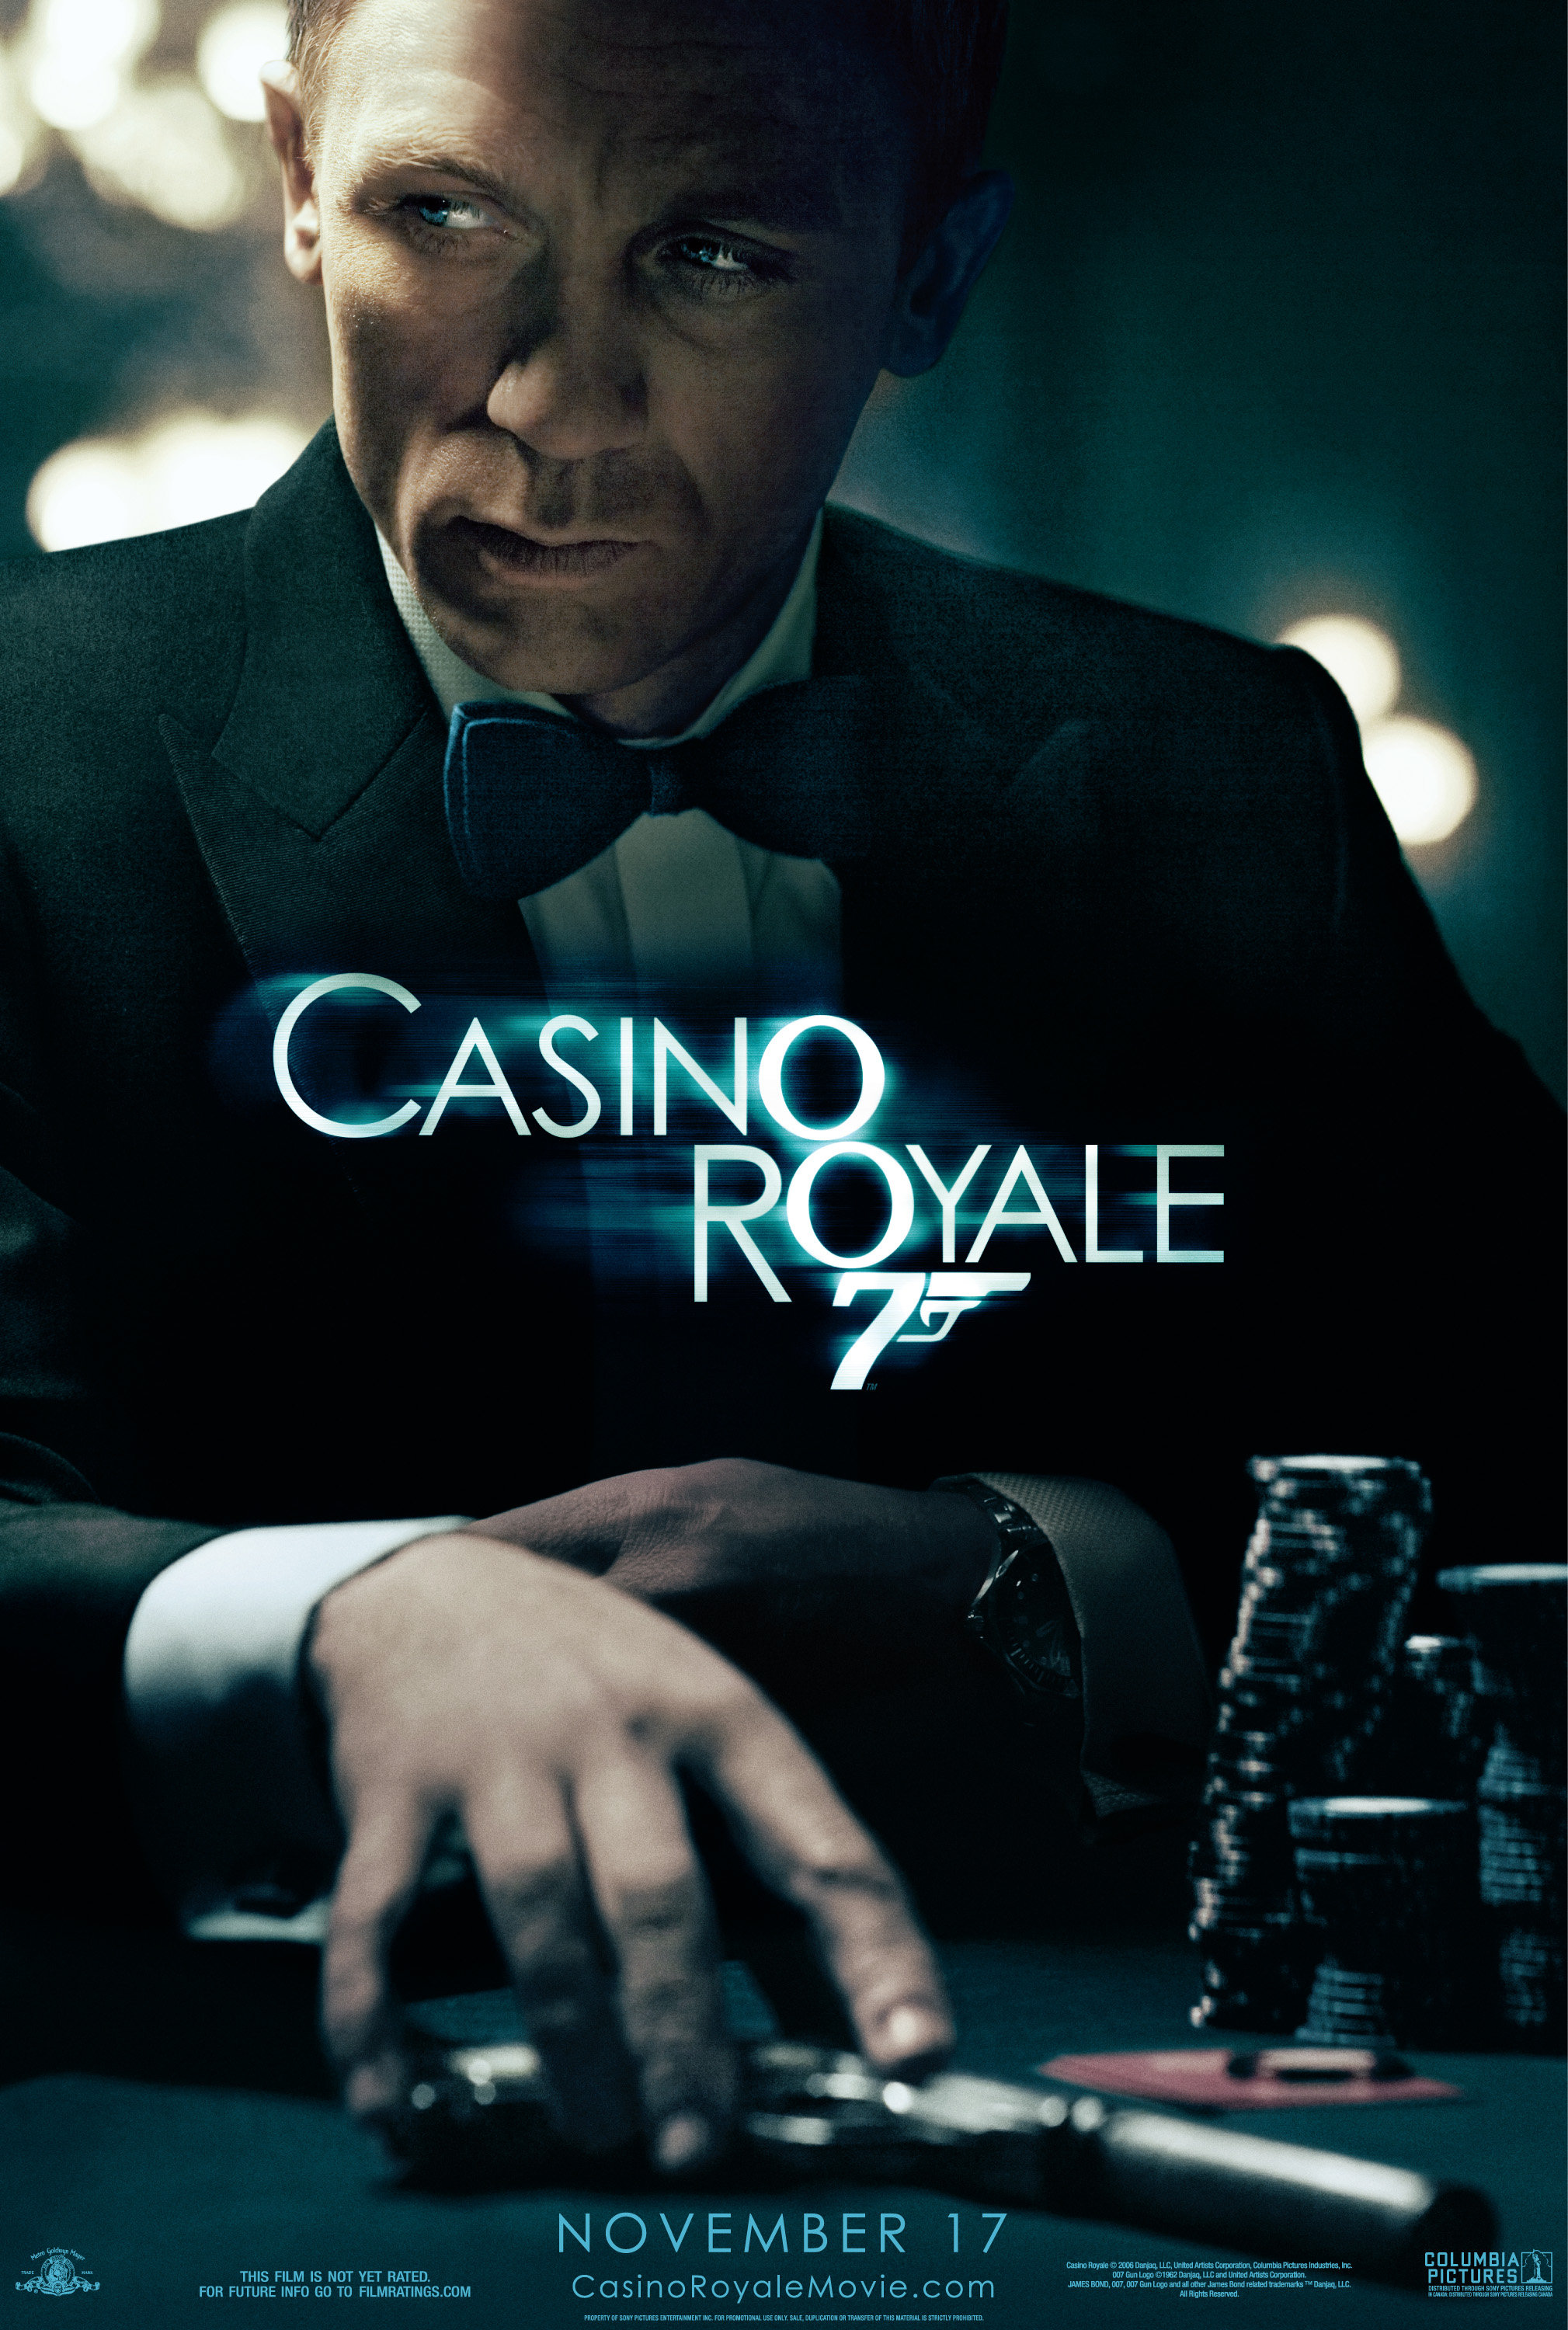 007 casino royale soundtrack torrent eldorado hotel casino reno home